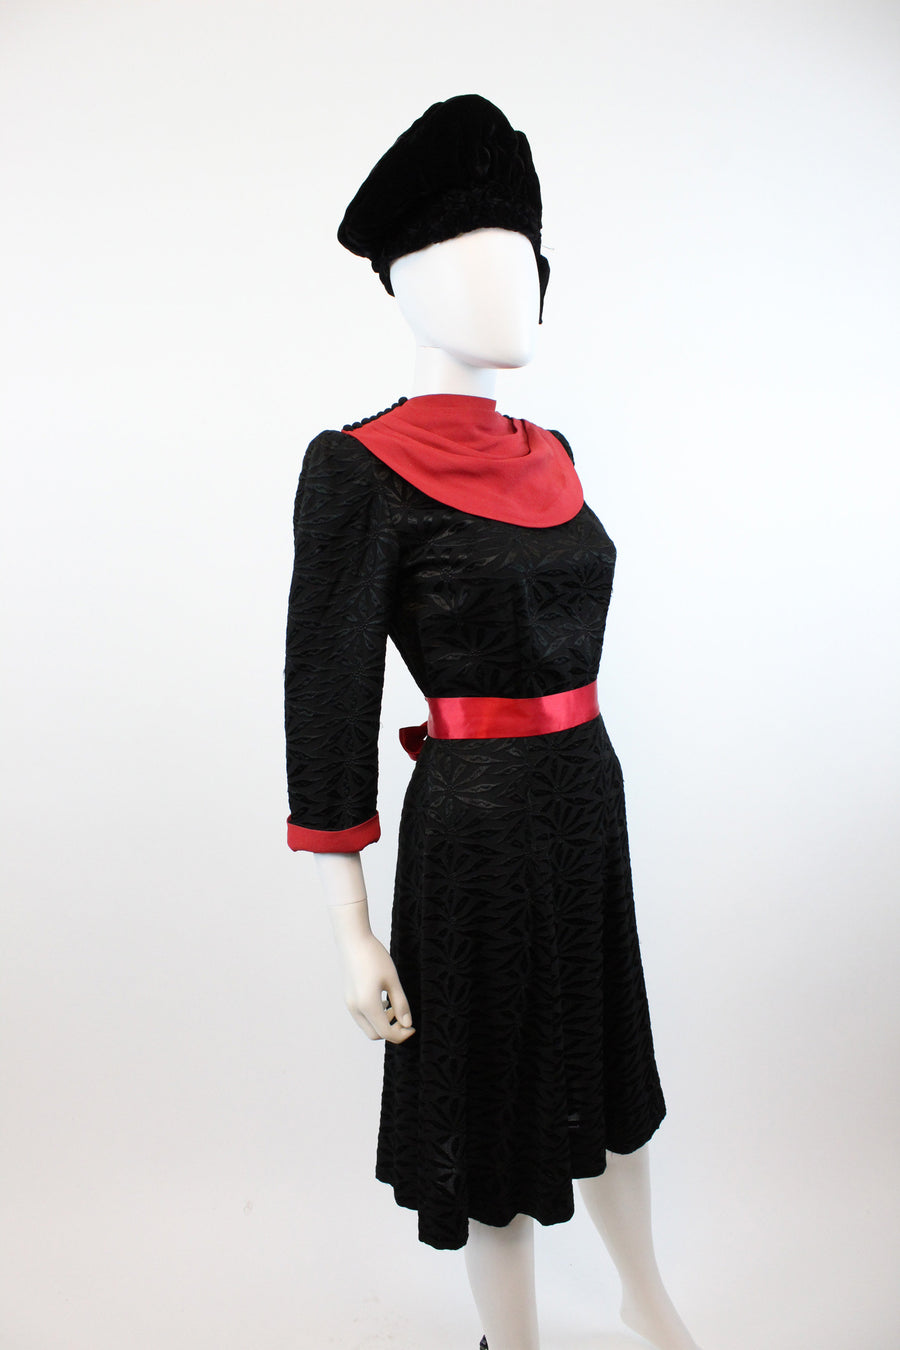 1940s draped cowl dress embroidered dress small | vintage rayon dress | new in